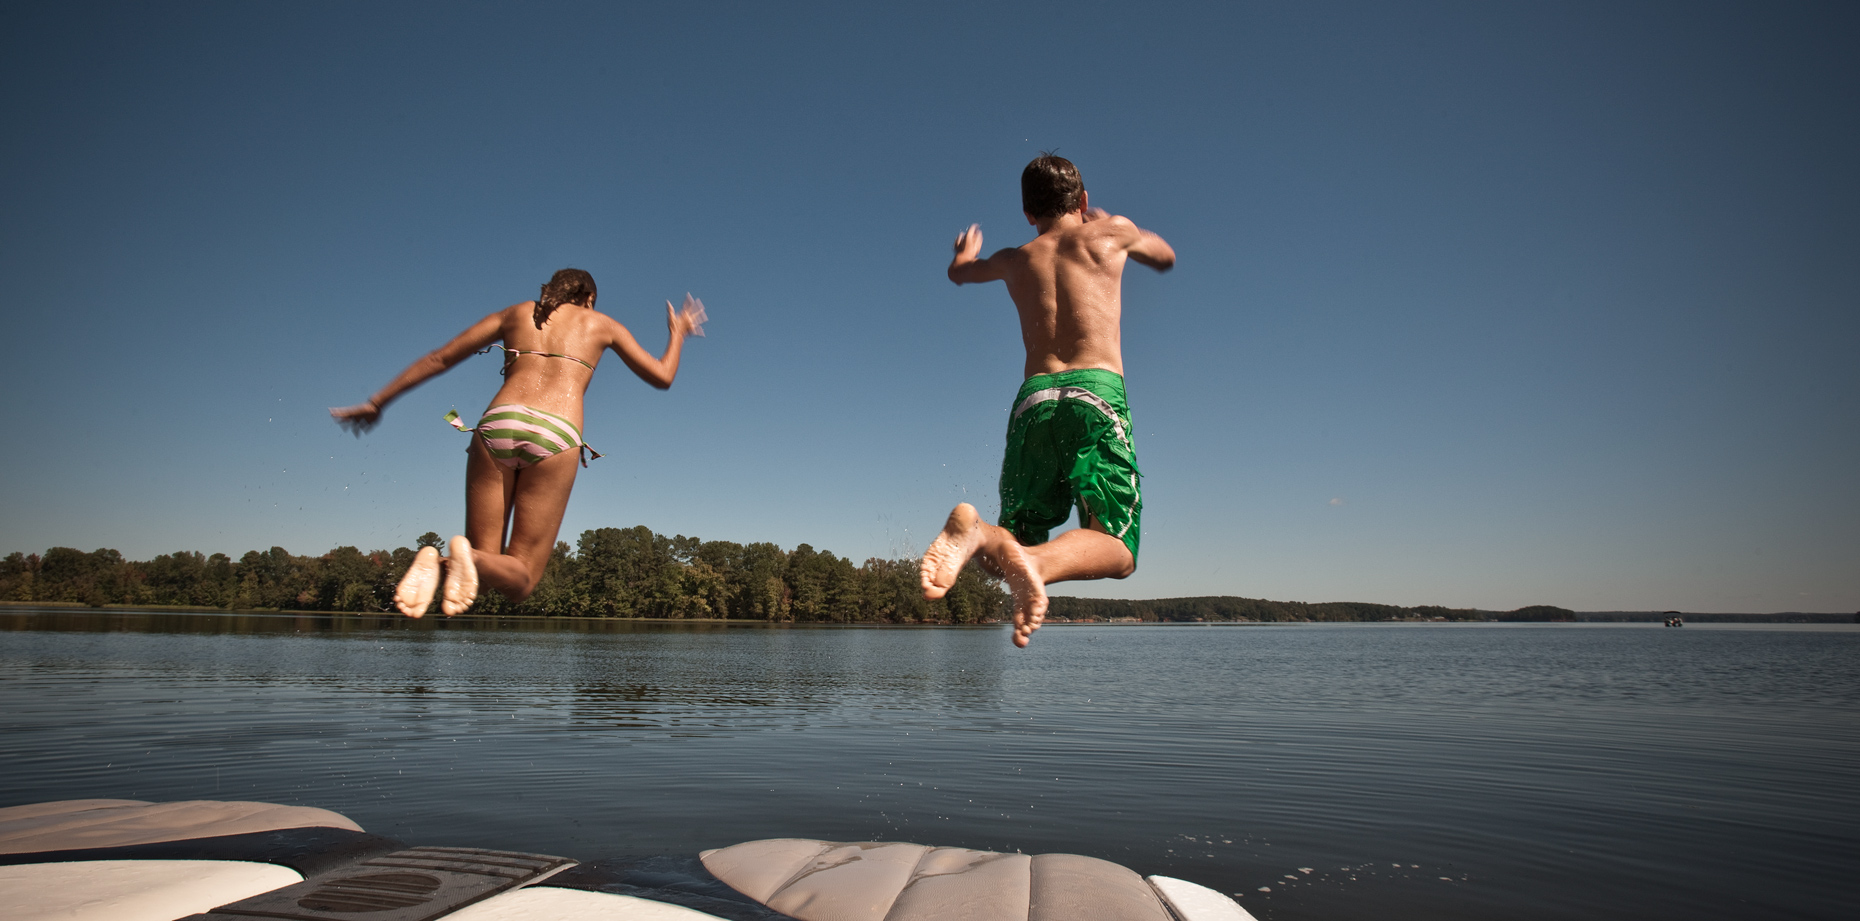 Jump-from-dock-lake